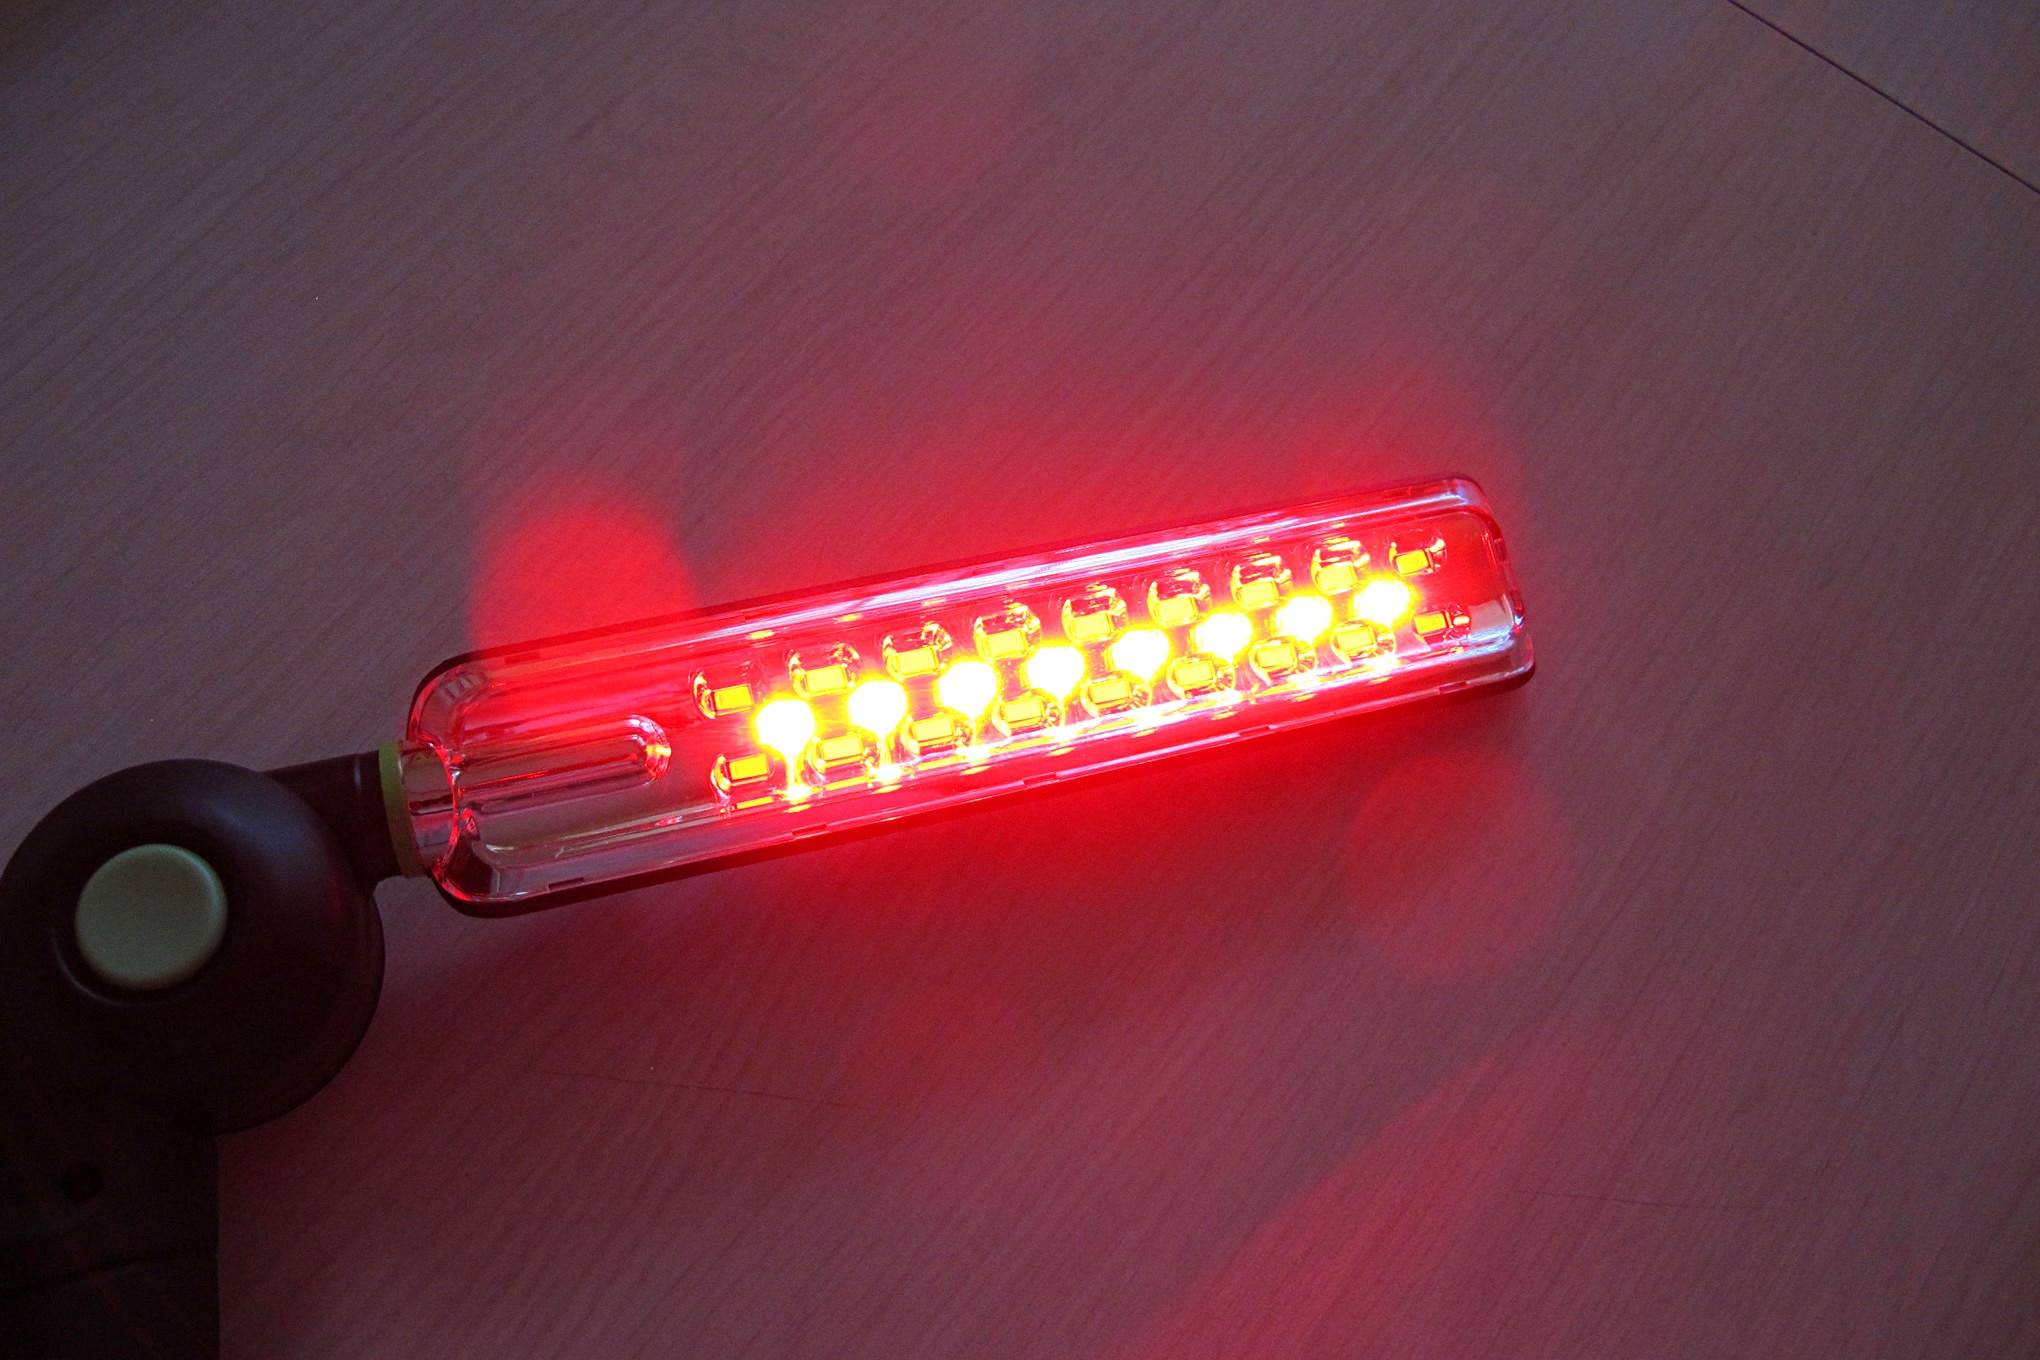 Mychanic 011 Blade Multi Light Red Flashing LEDs